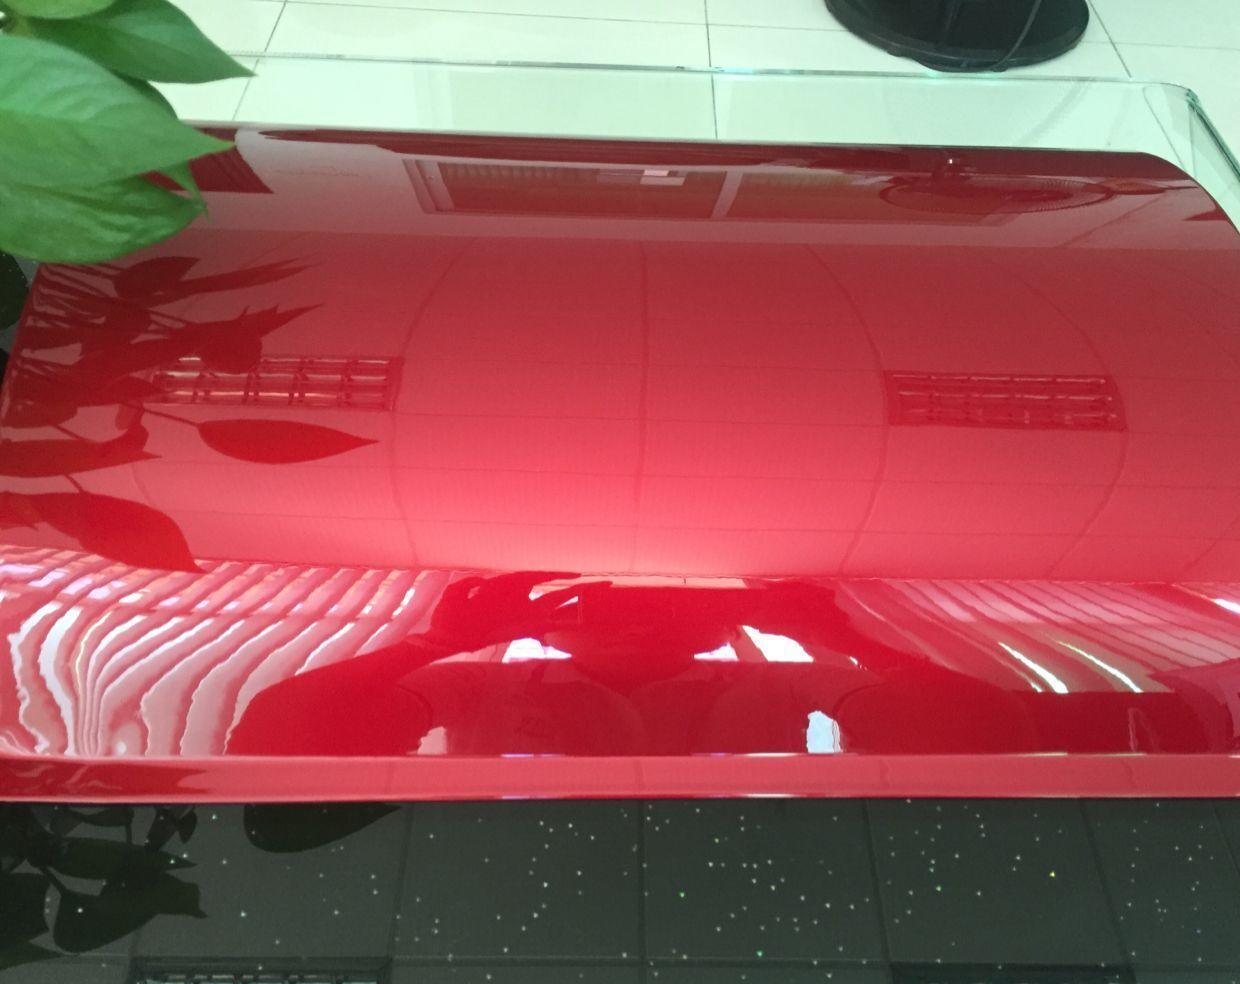 Clear Coat Paint For Car.Hot Item Agp Brand Automotive Refinish Paint Ag 999 Hs Quality Clearcoat